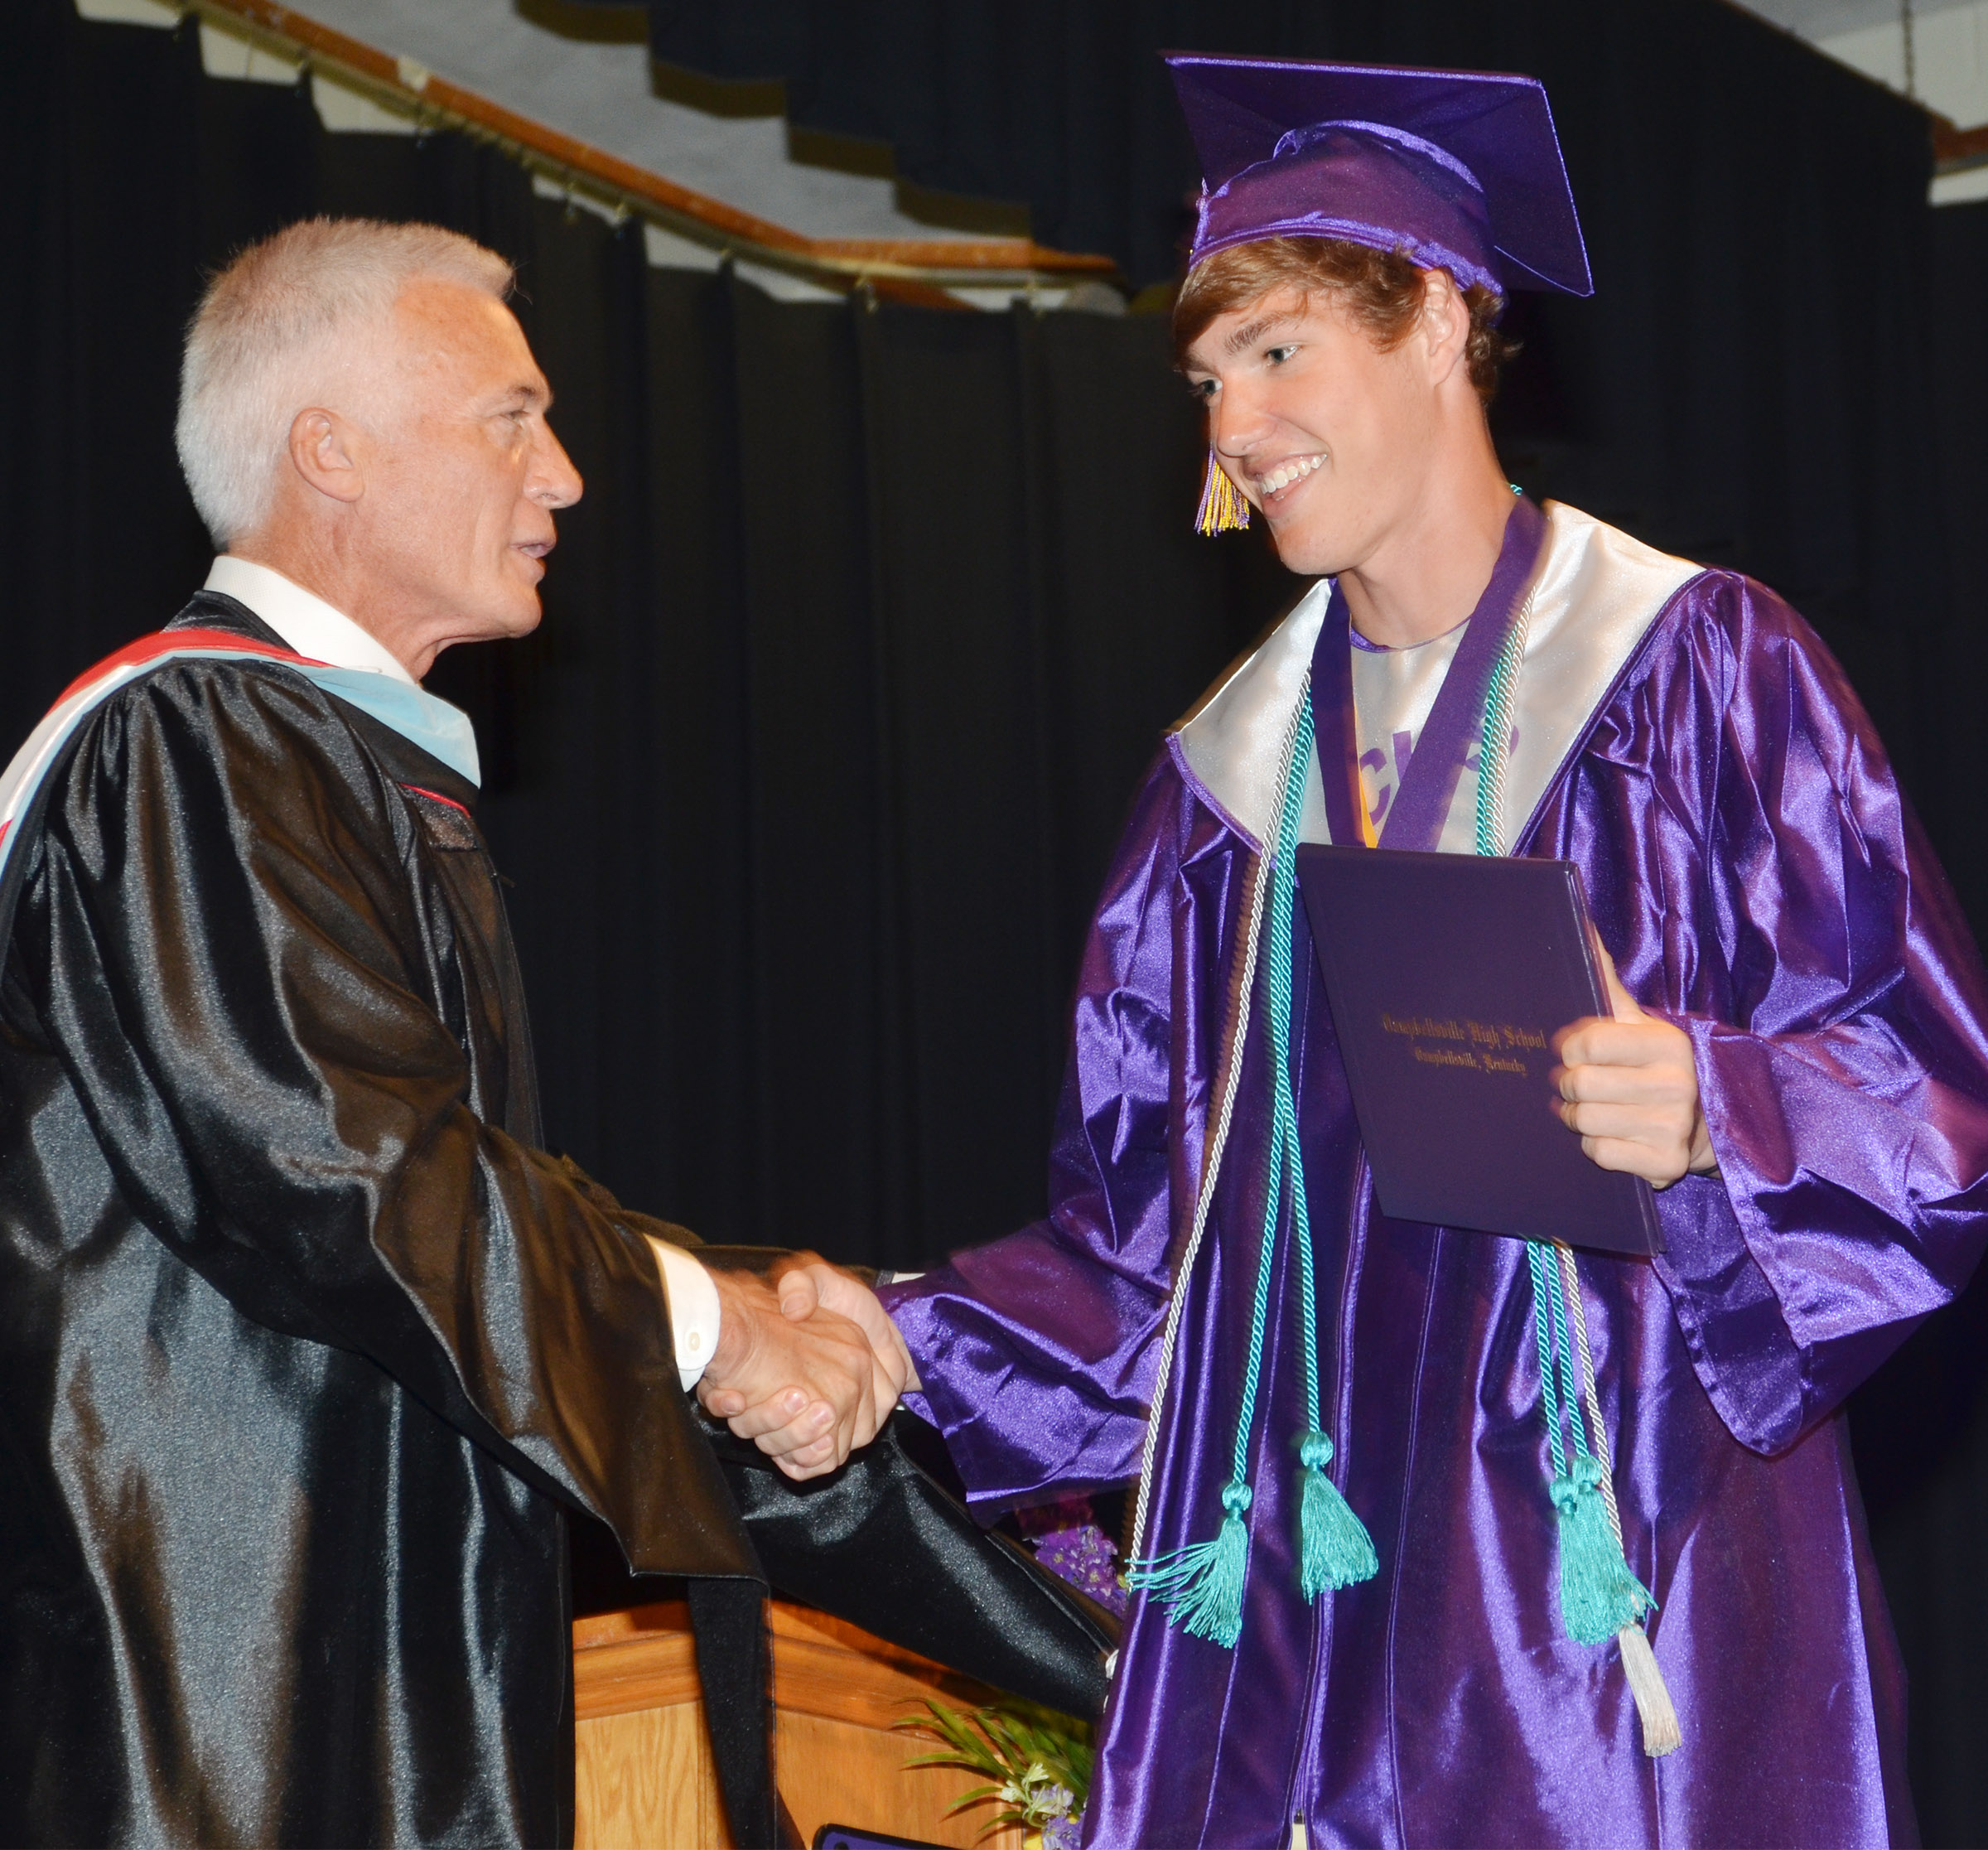 Campbellsville Independent Schools Superintendent Mike Deaton congratulates Zack Bottoms.